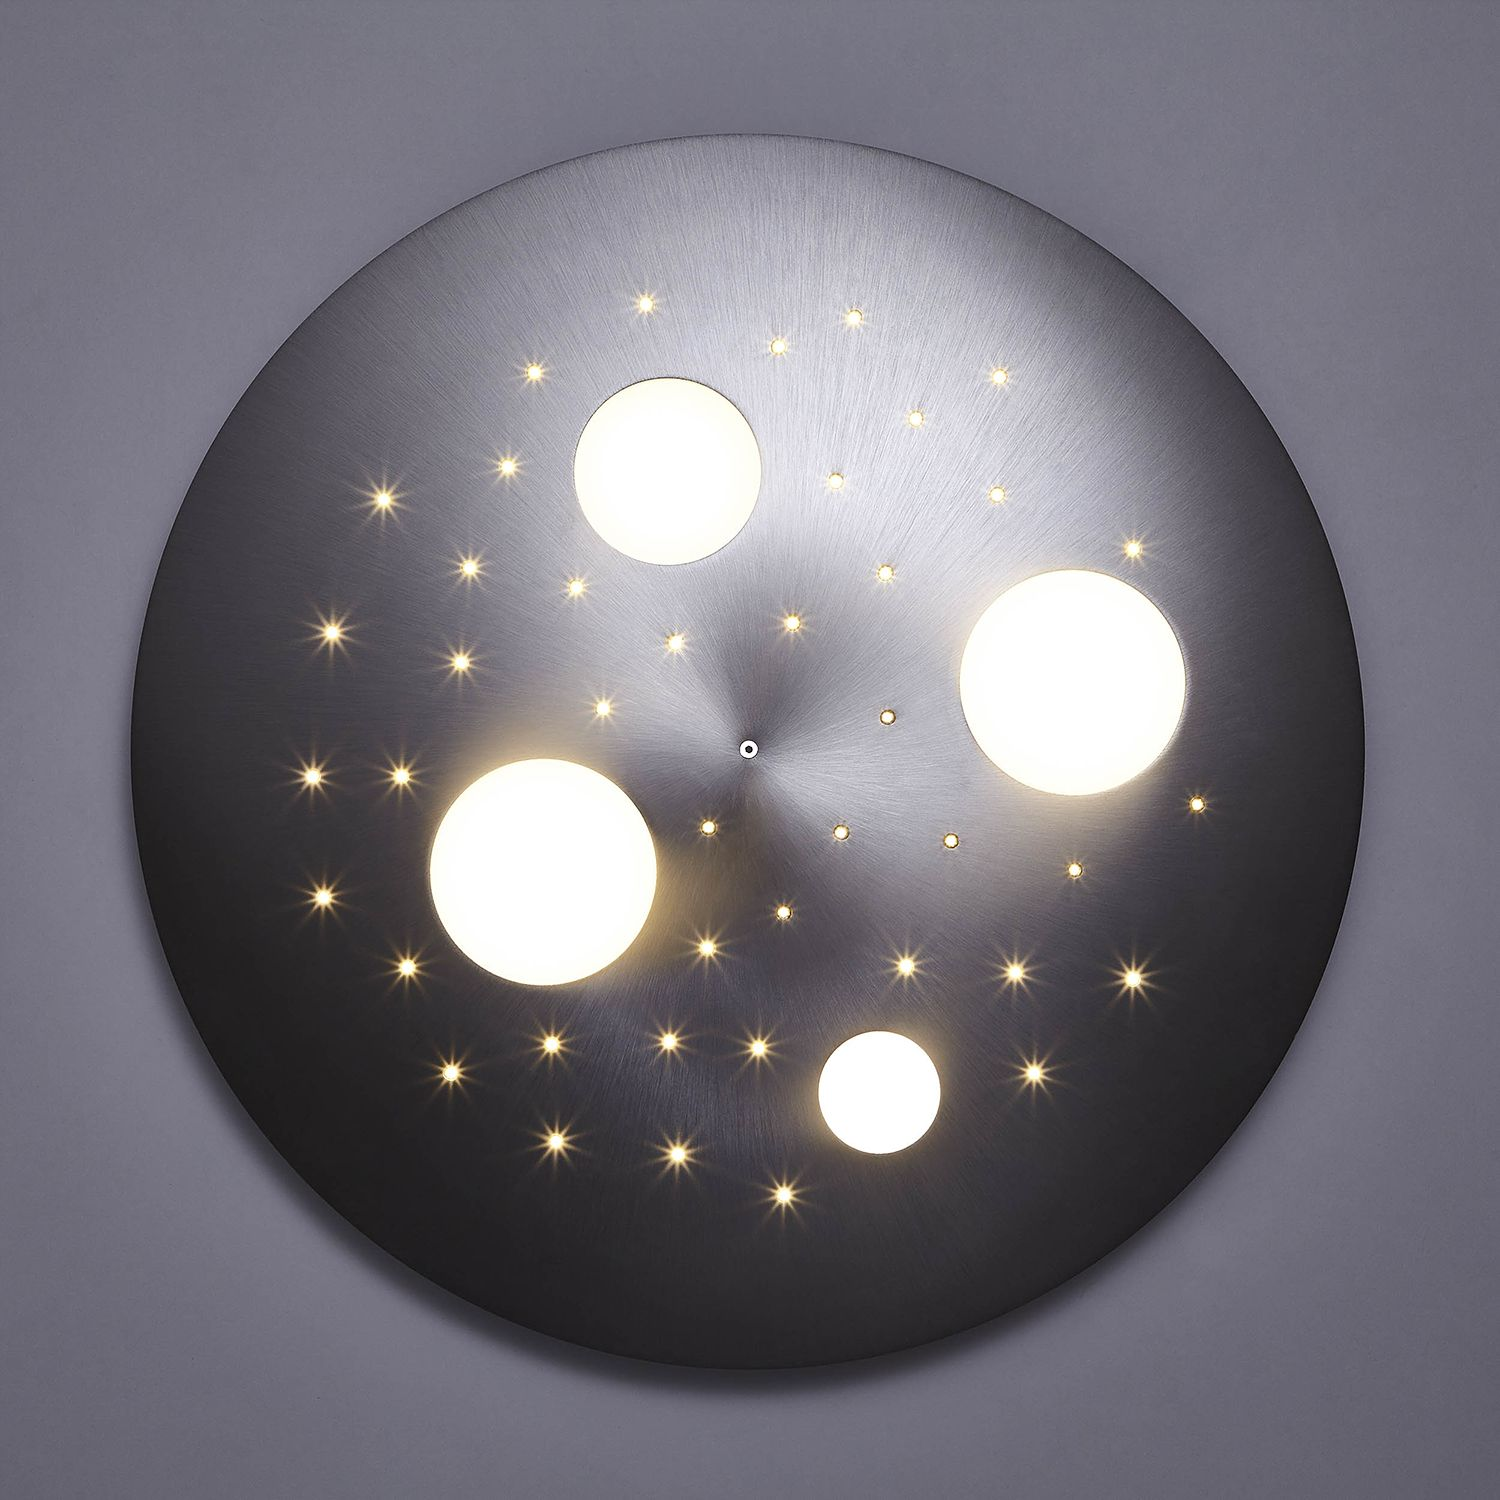 home24 LED-Deckenleuchte Planets